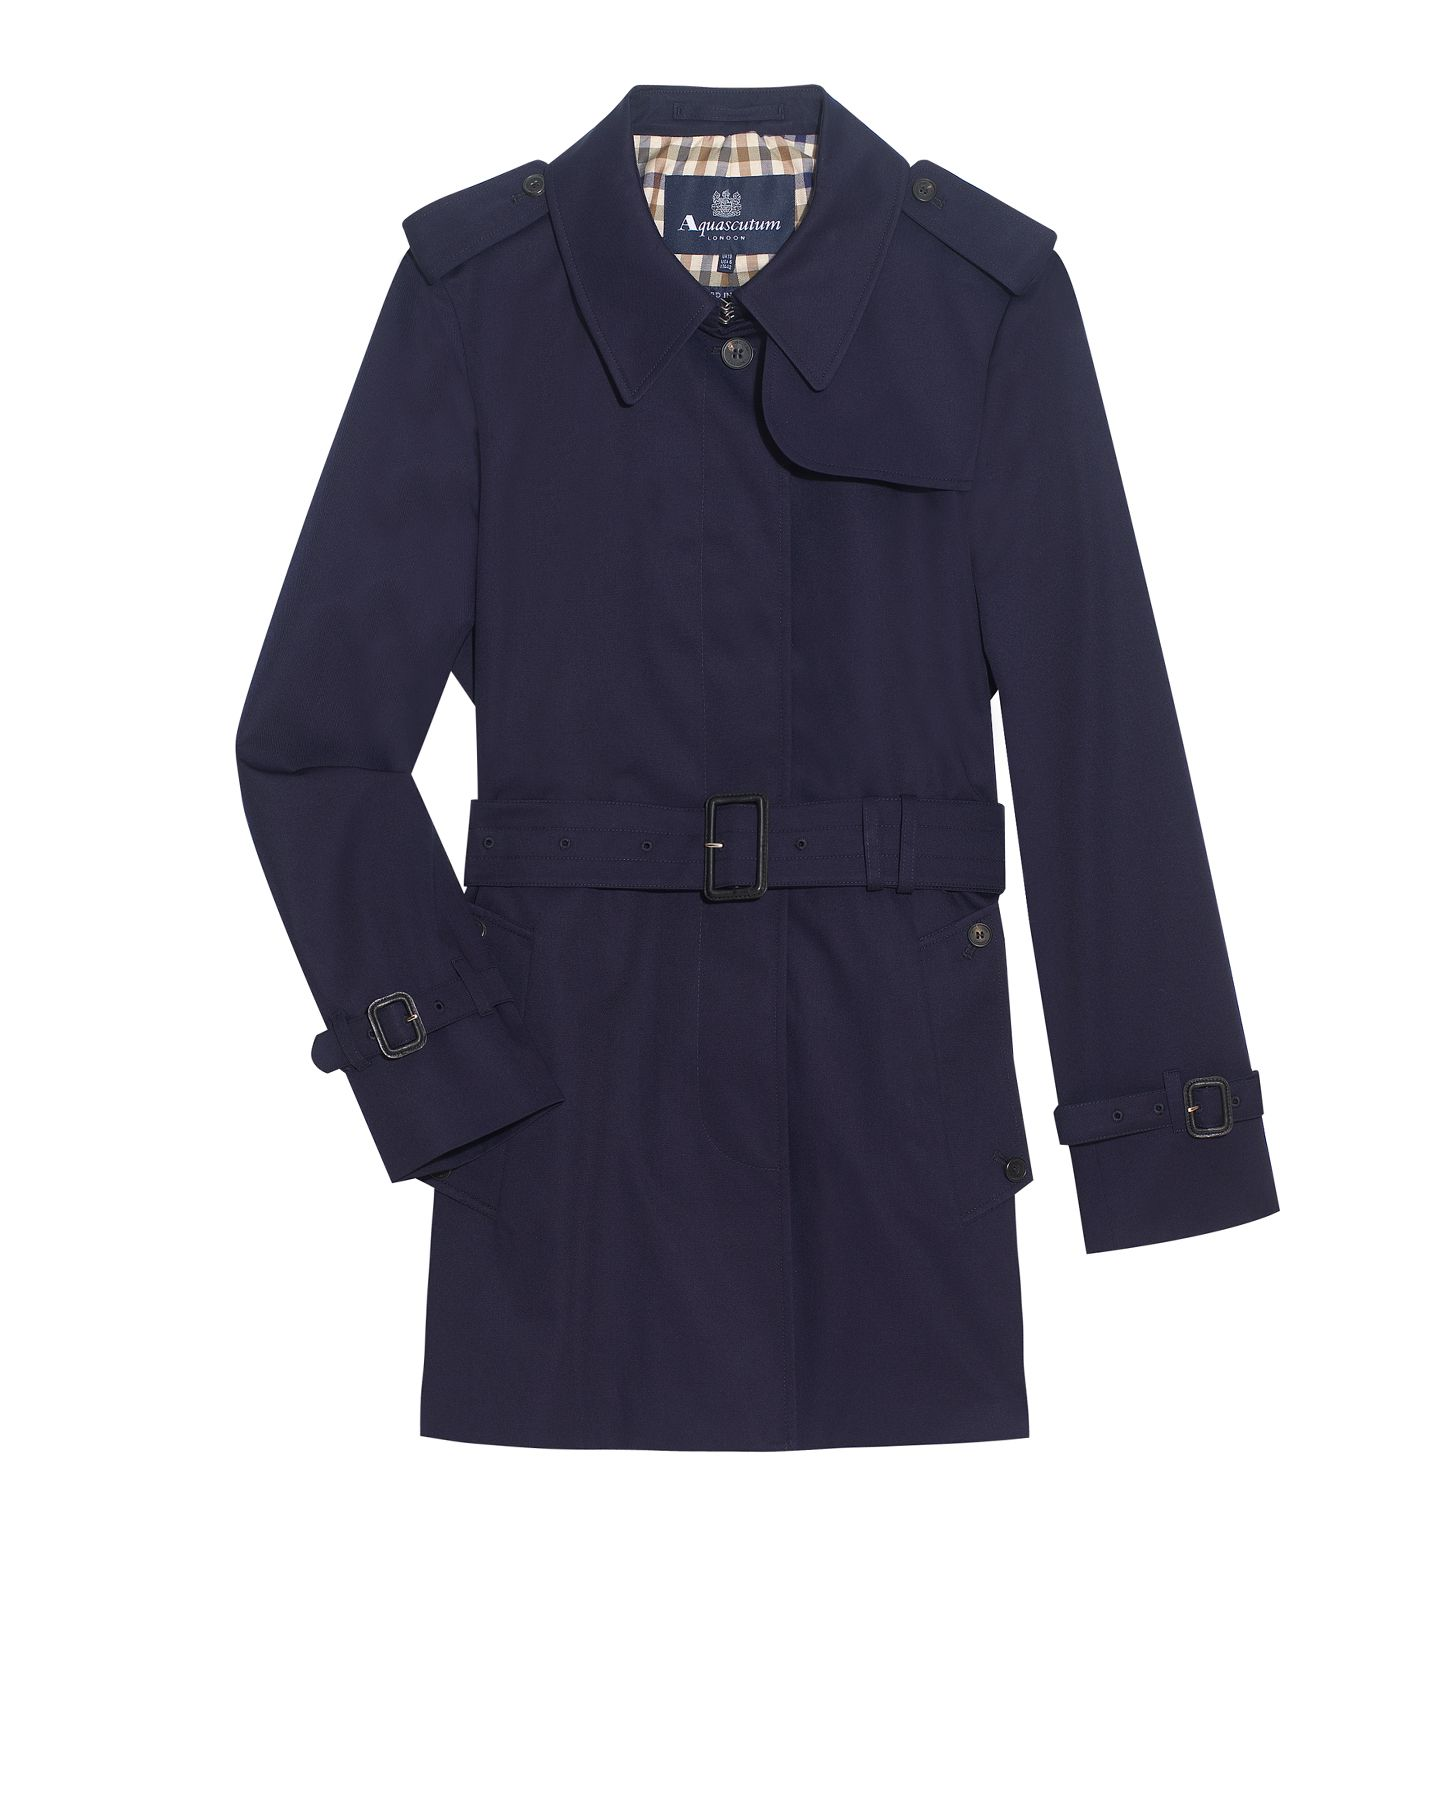 Women's Aquascutum Jennifer single breasted rainwear, Navy